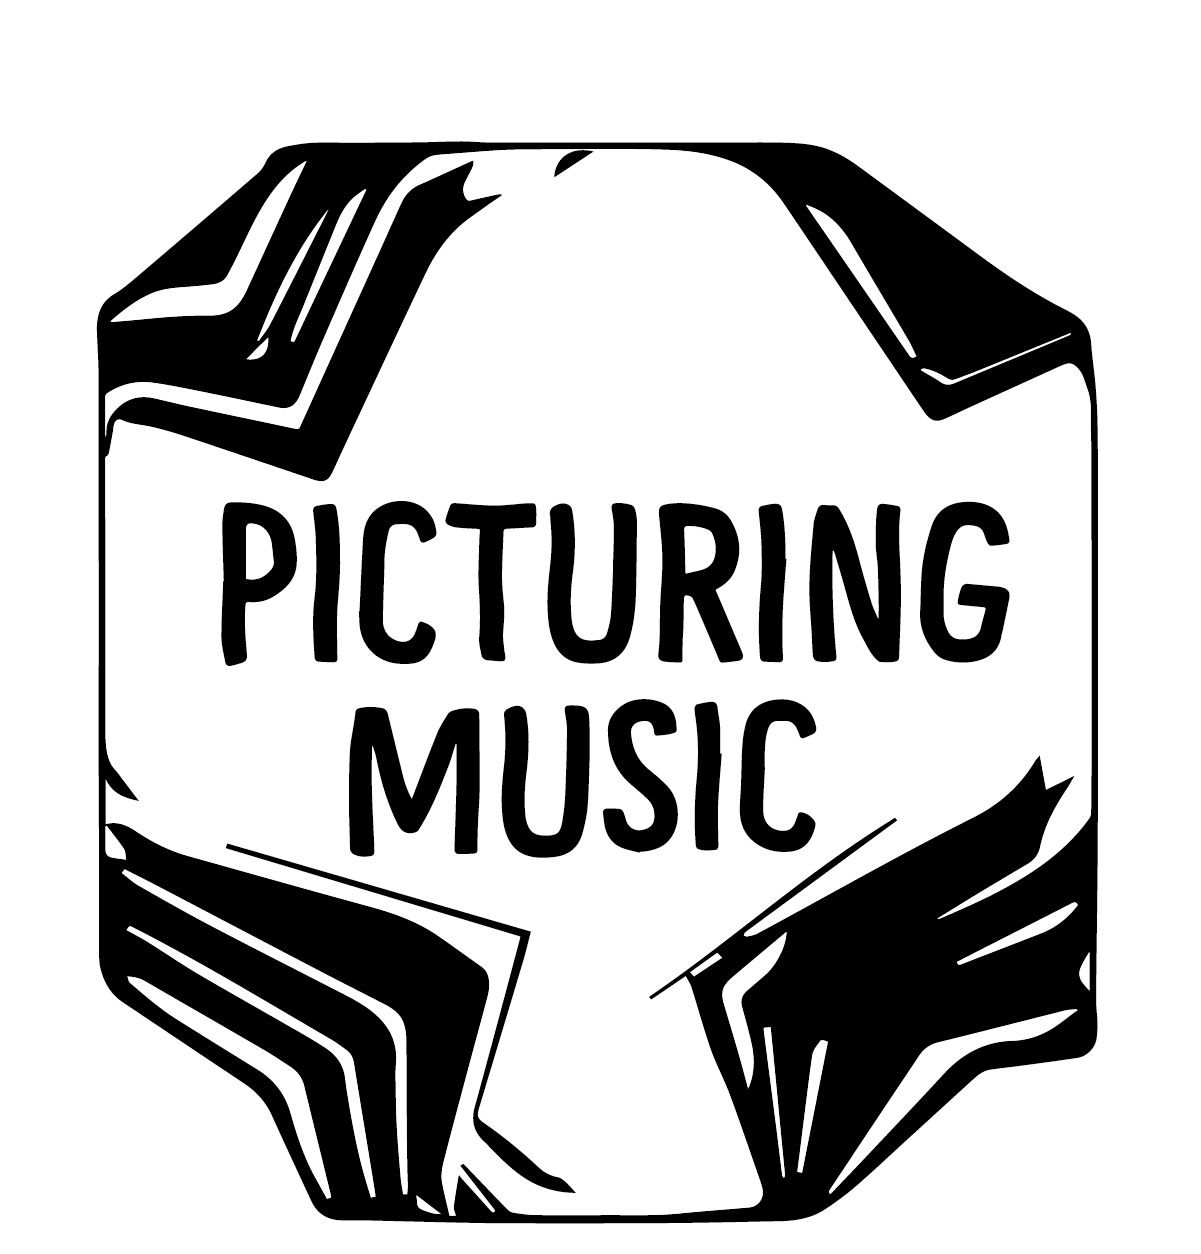 PICTURING MUSIC